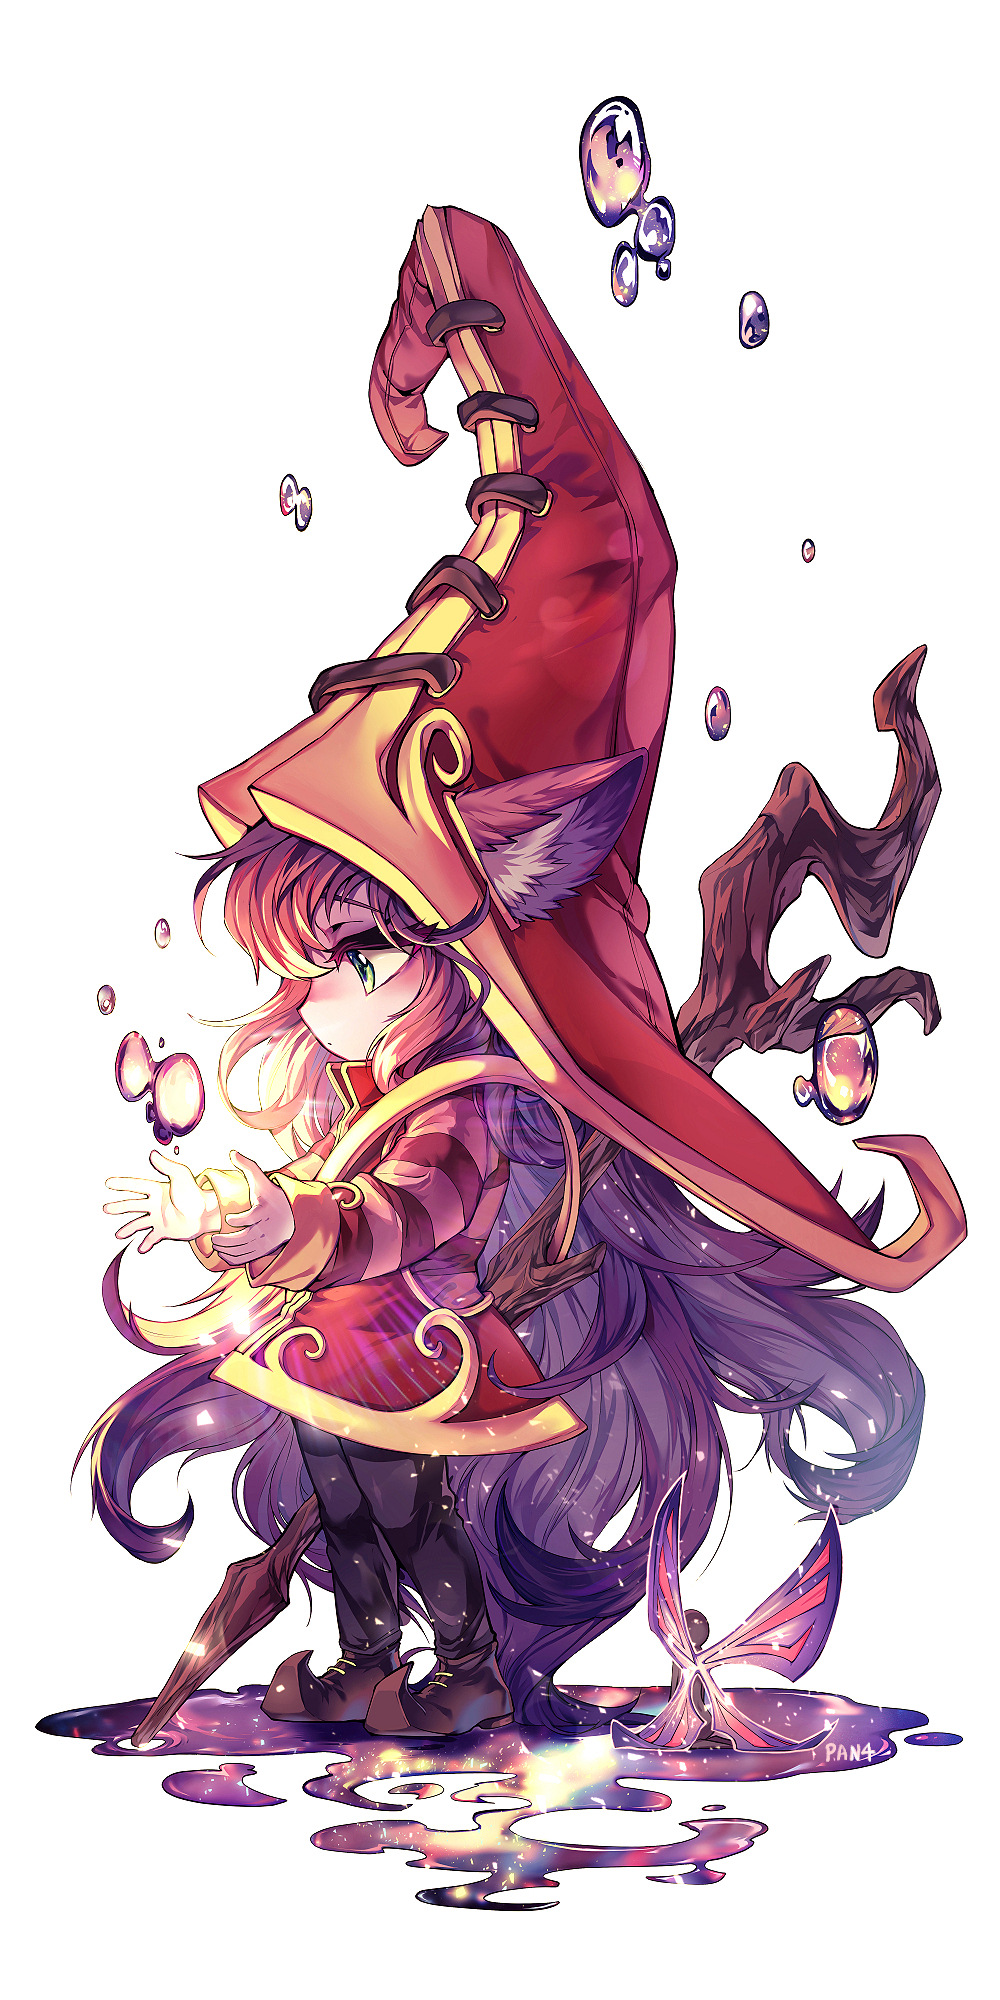 1girl animal_ears black_legwear boots dress eyelashes from_side full_body green_eyes half-closed_eyes hat highres league_of_legends long_hair long_sleeves lulu_(league_of_legends) panza purple_hair solo staff standing very_long_hair witch_hat yordle